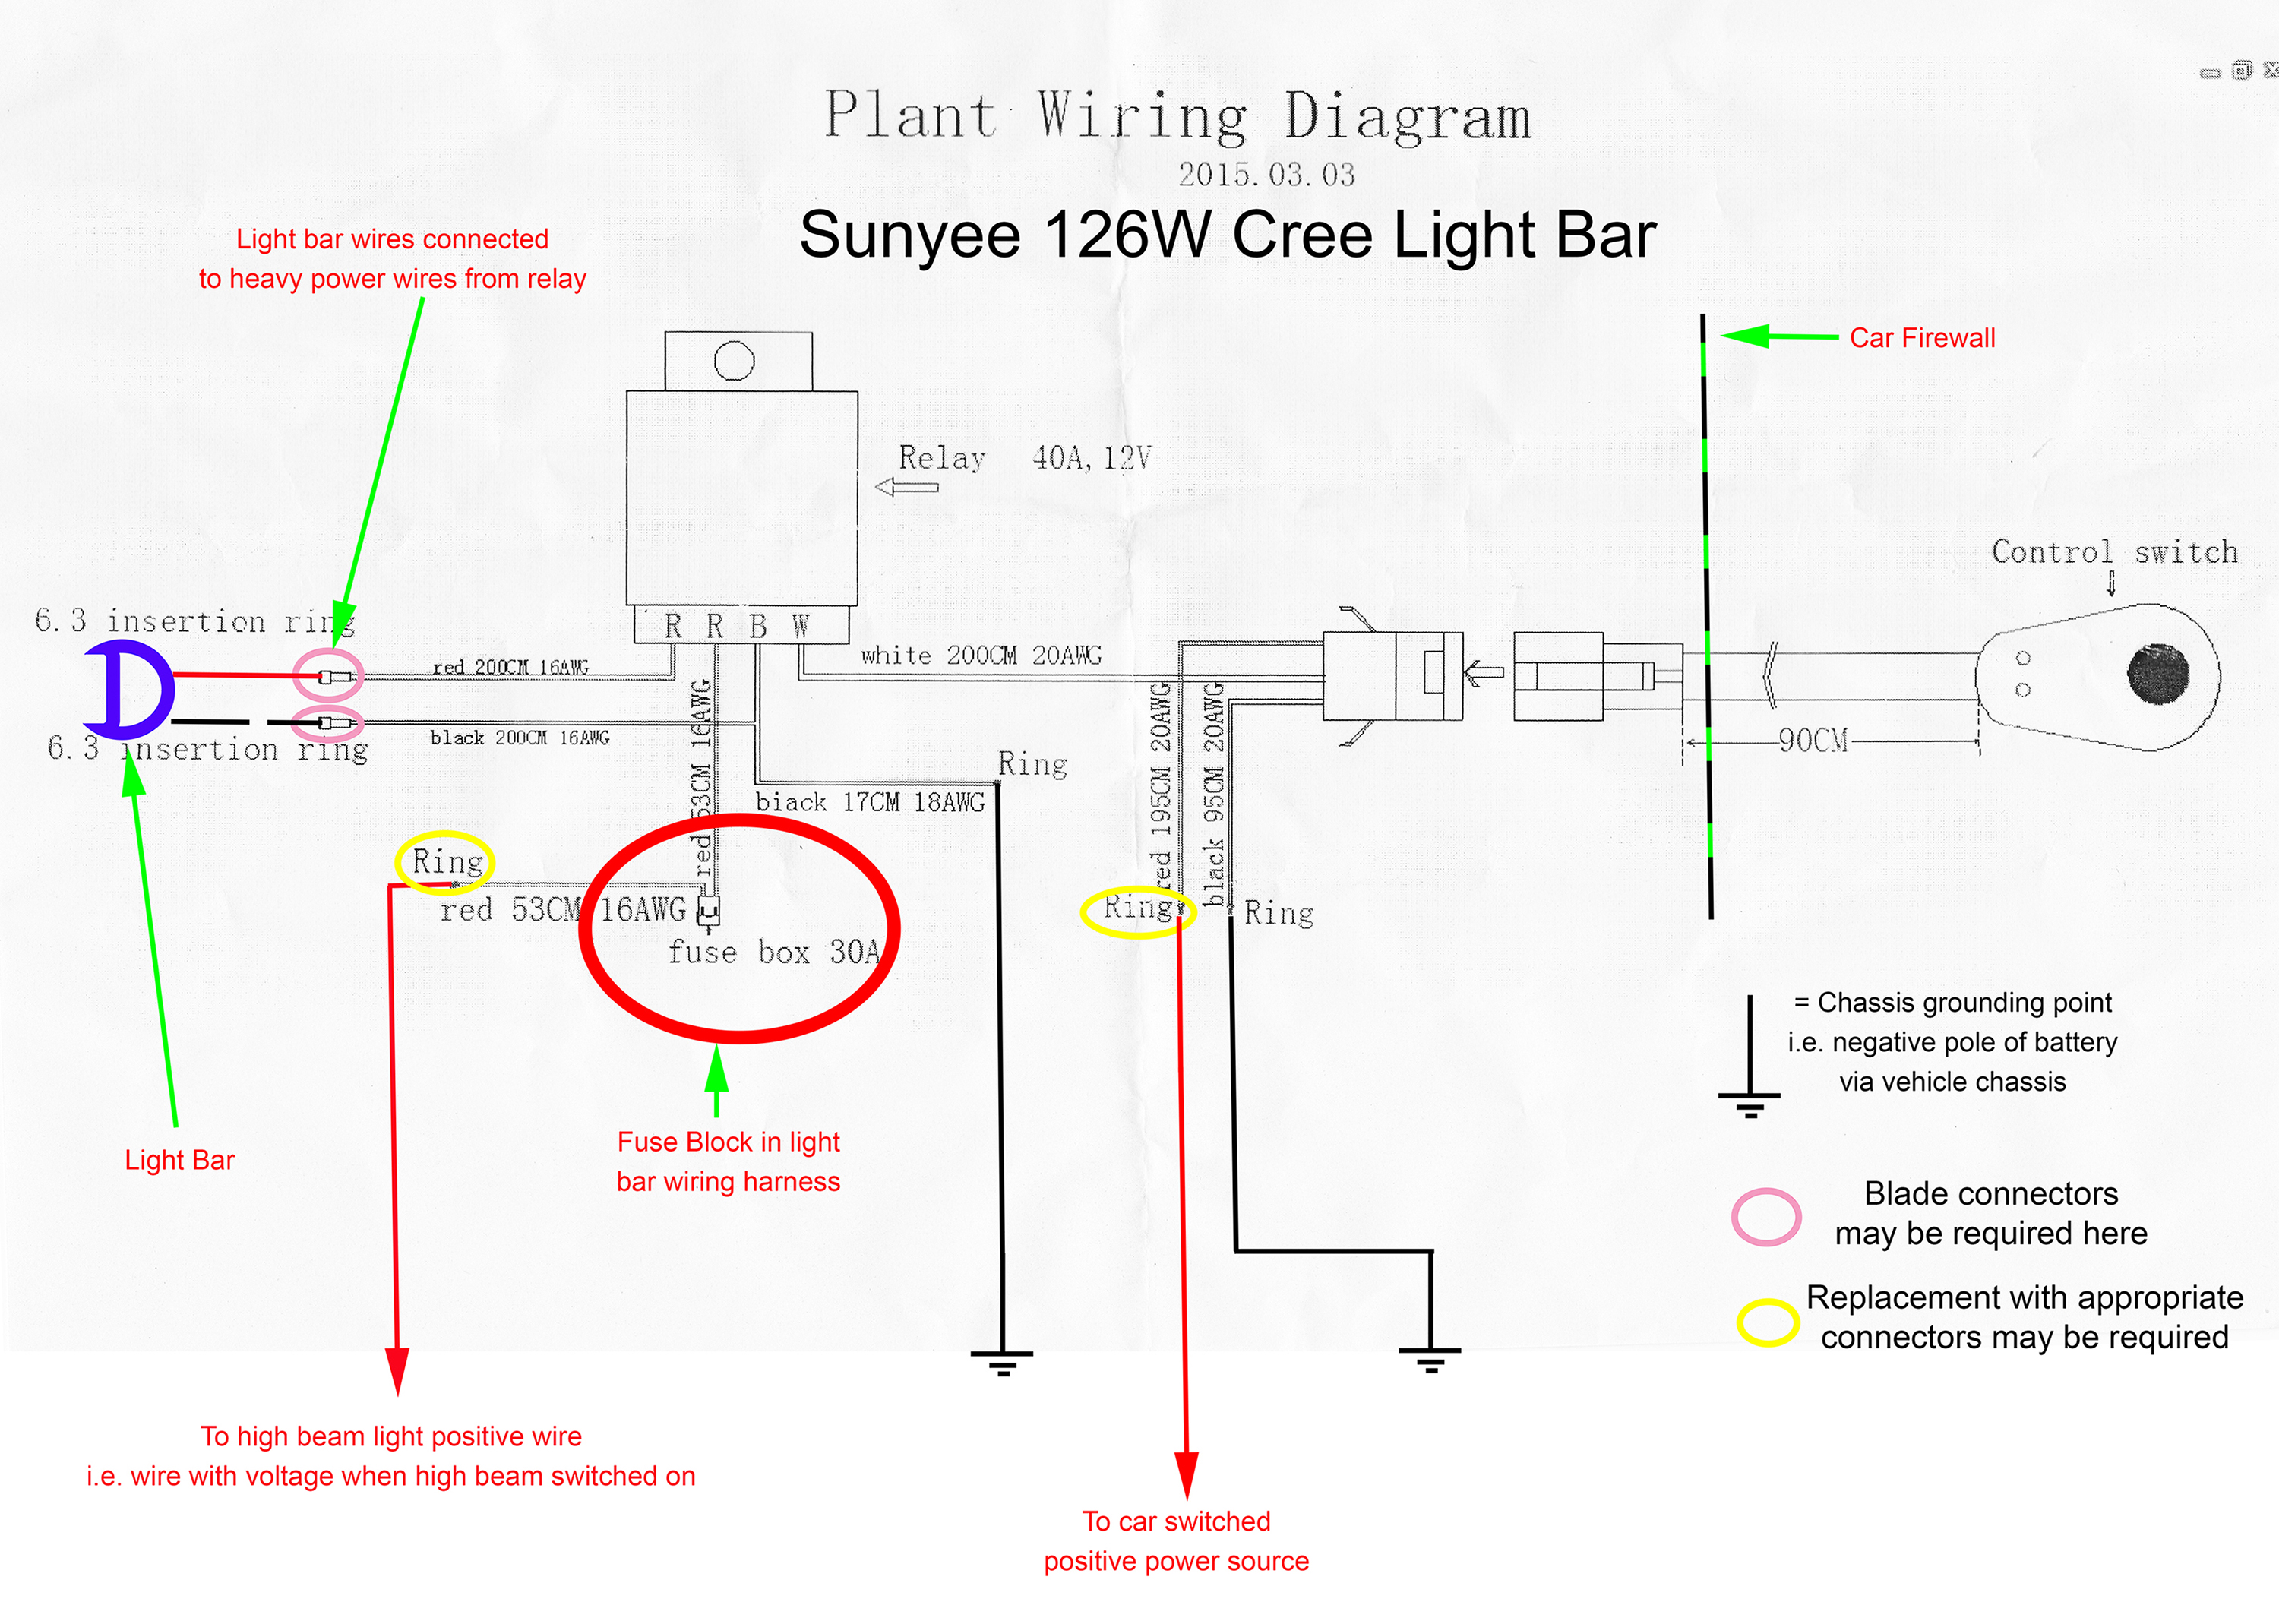 3 wiring diagram way switch wiring electrical wiring diagram light For Hot Tub Wiring Diagram Pdf wiring diagram light switch pdf the wiring diagram install sunyee cree 126w light bar sg ii Hot Springs Hot Tub Schematic